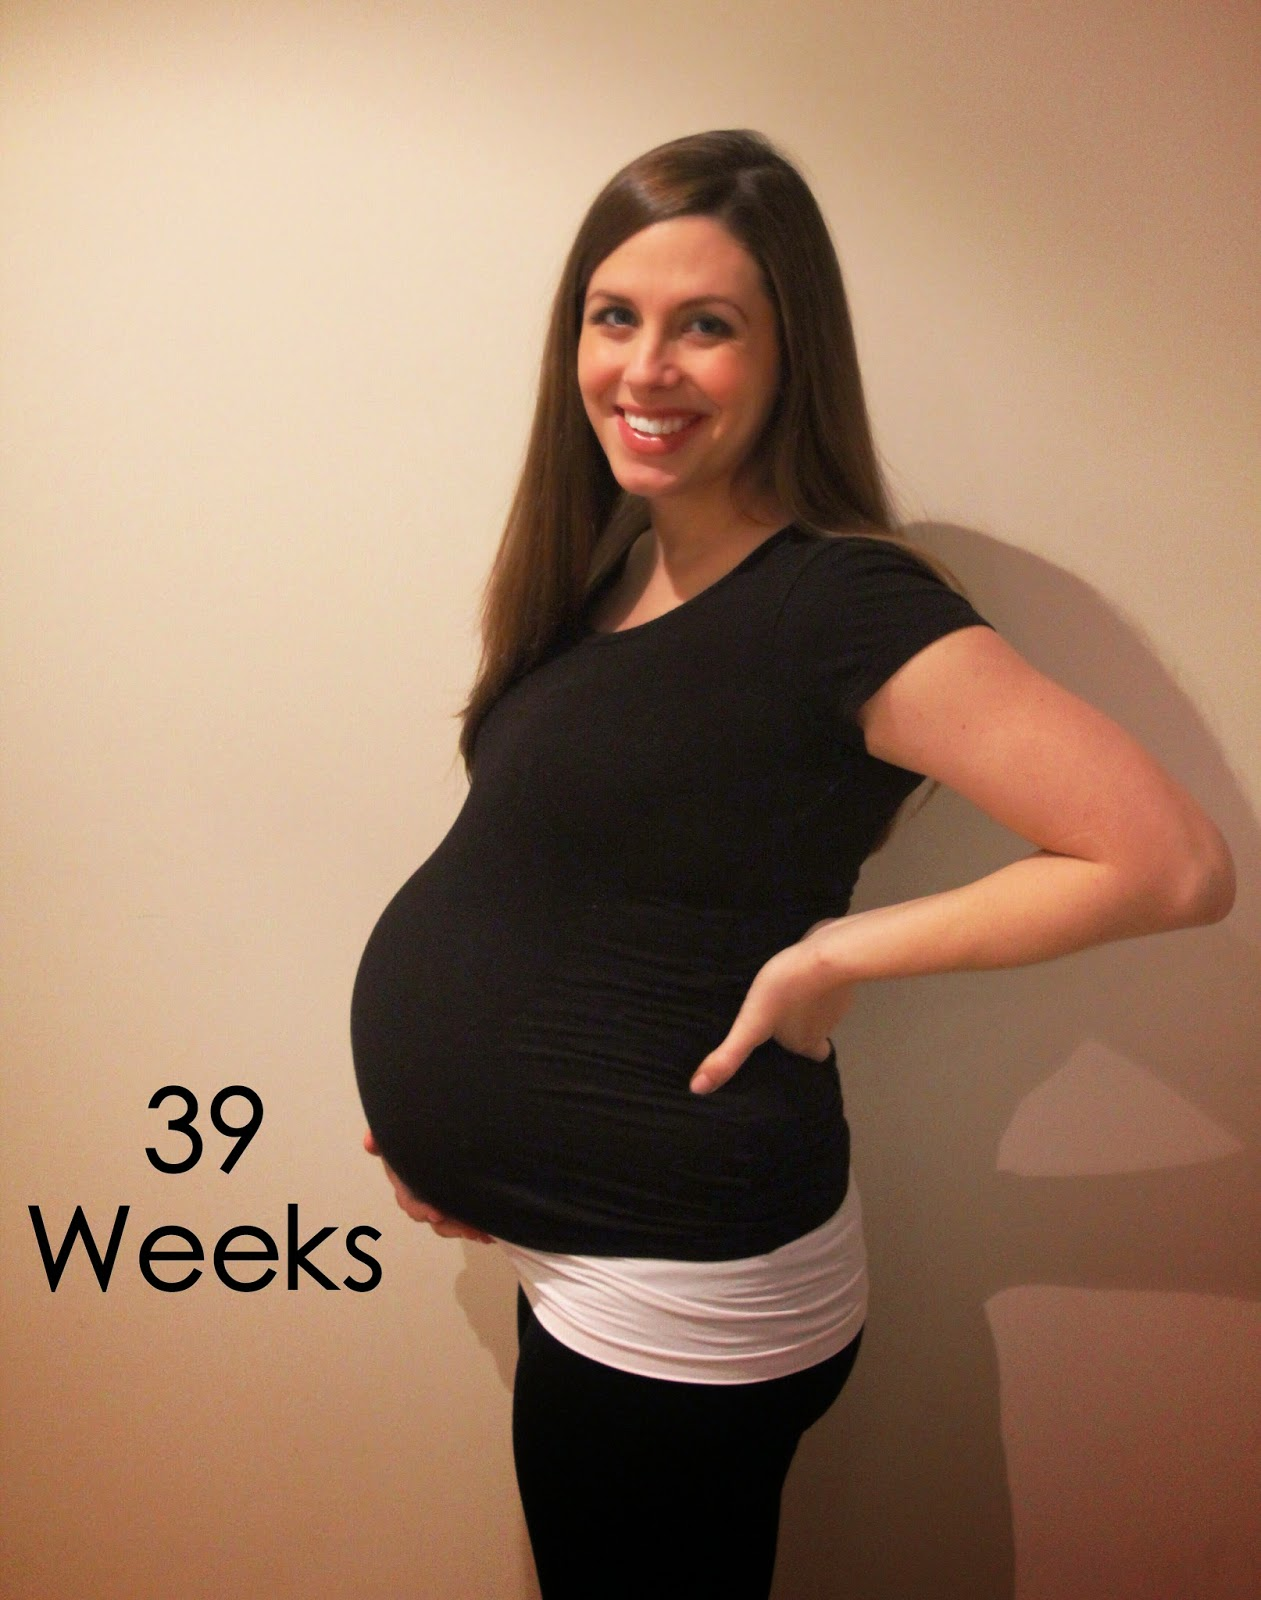 Oh So Bright: 39 Weeks Pregnant